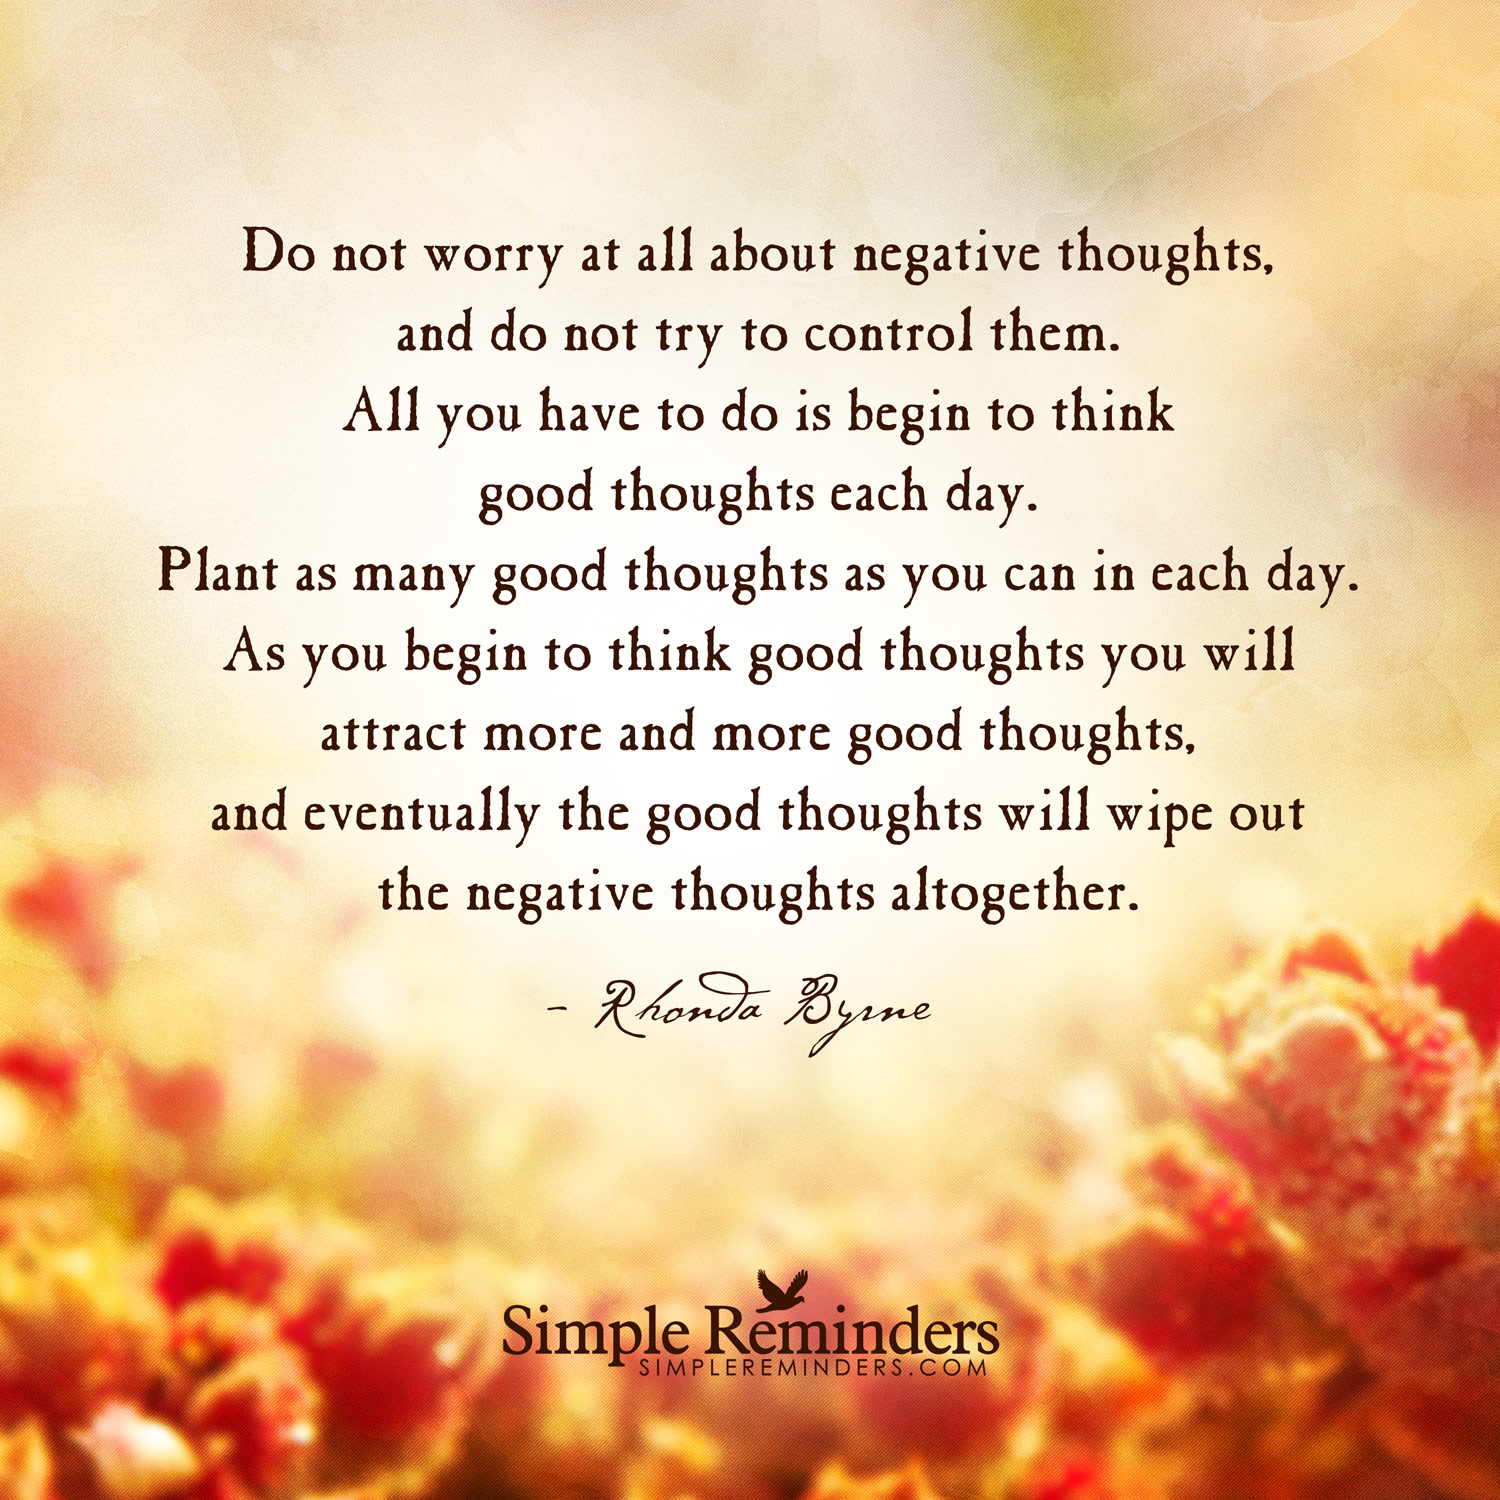 rhonda-byrne-plant-good-thoughts.jpg